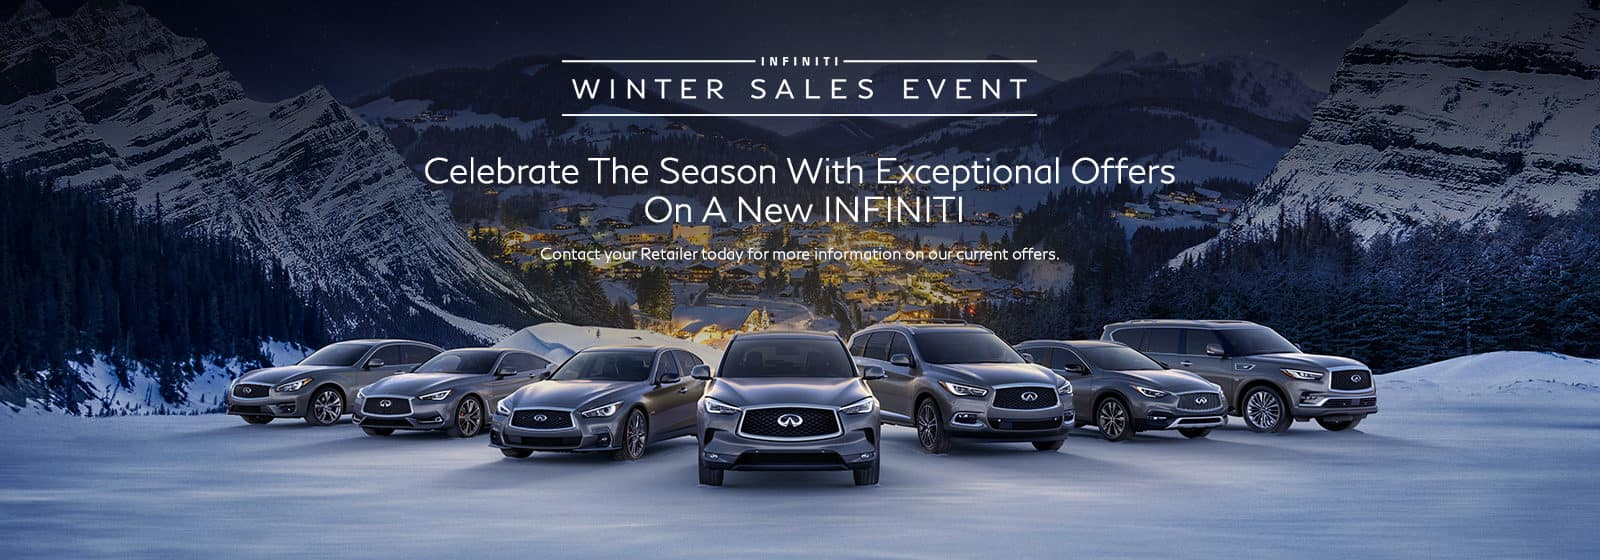 INFINITI Winter Sales Event